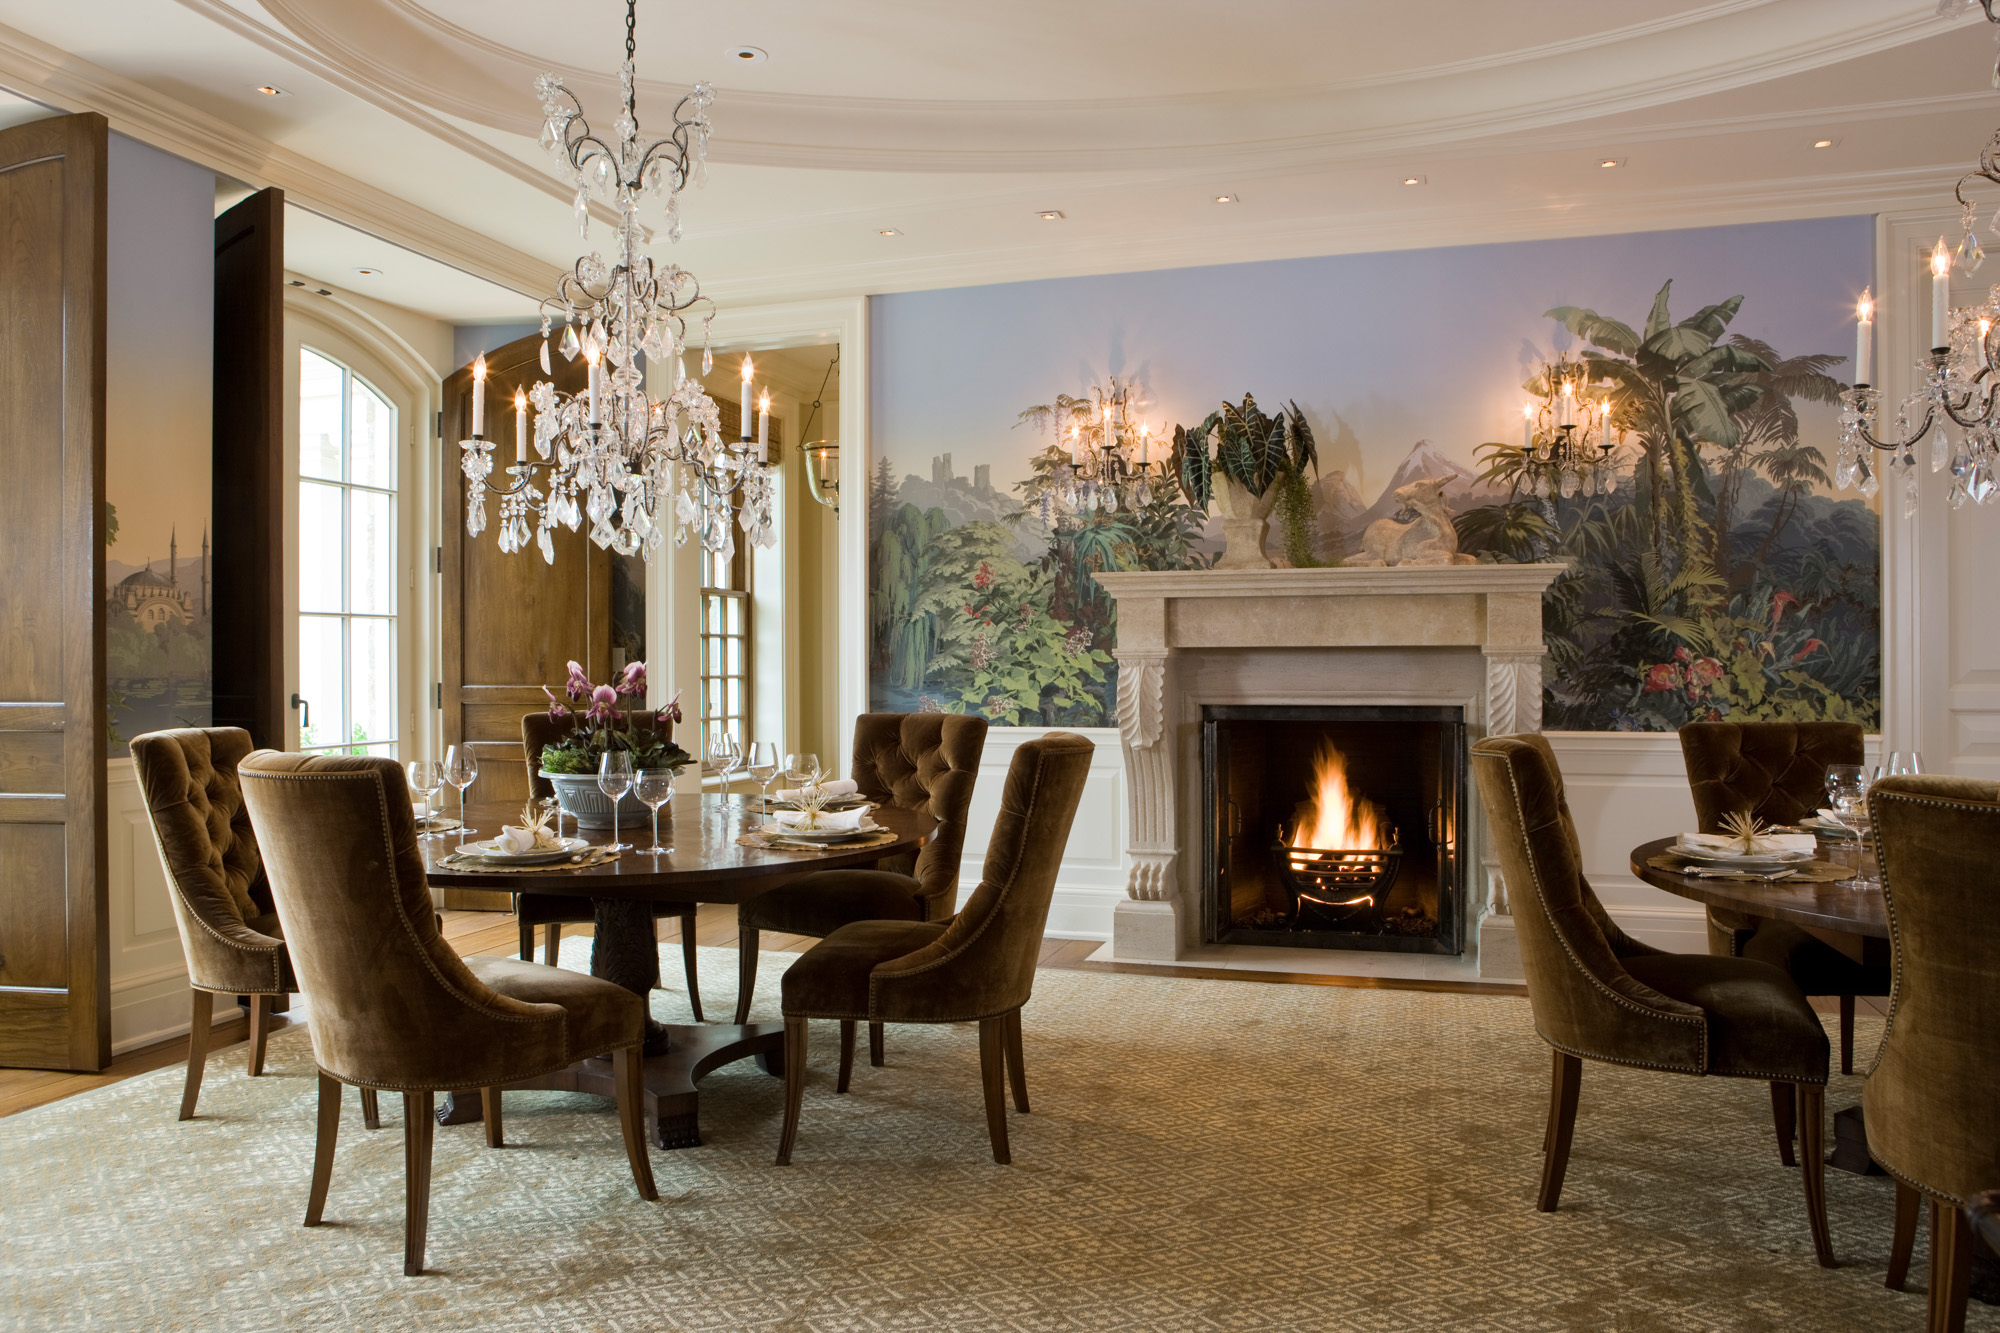 Weston georgian manor slc interiors for Georgian living room ideas